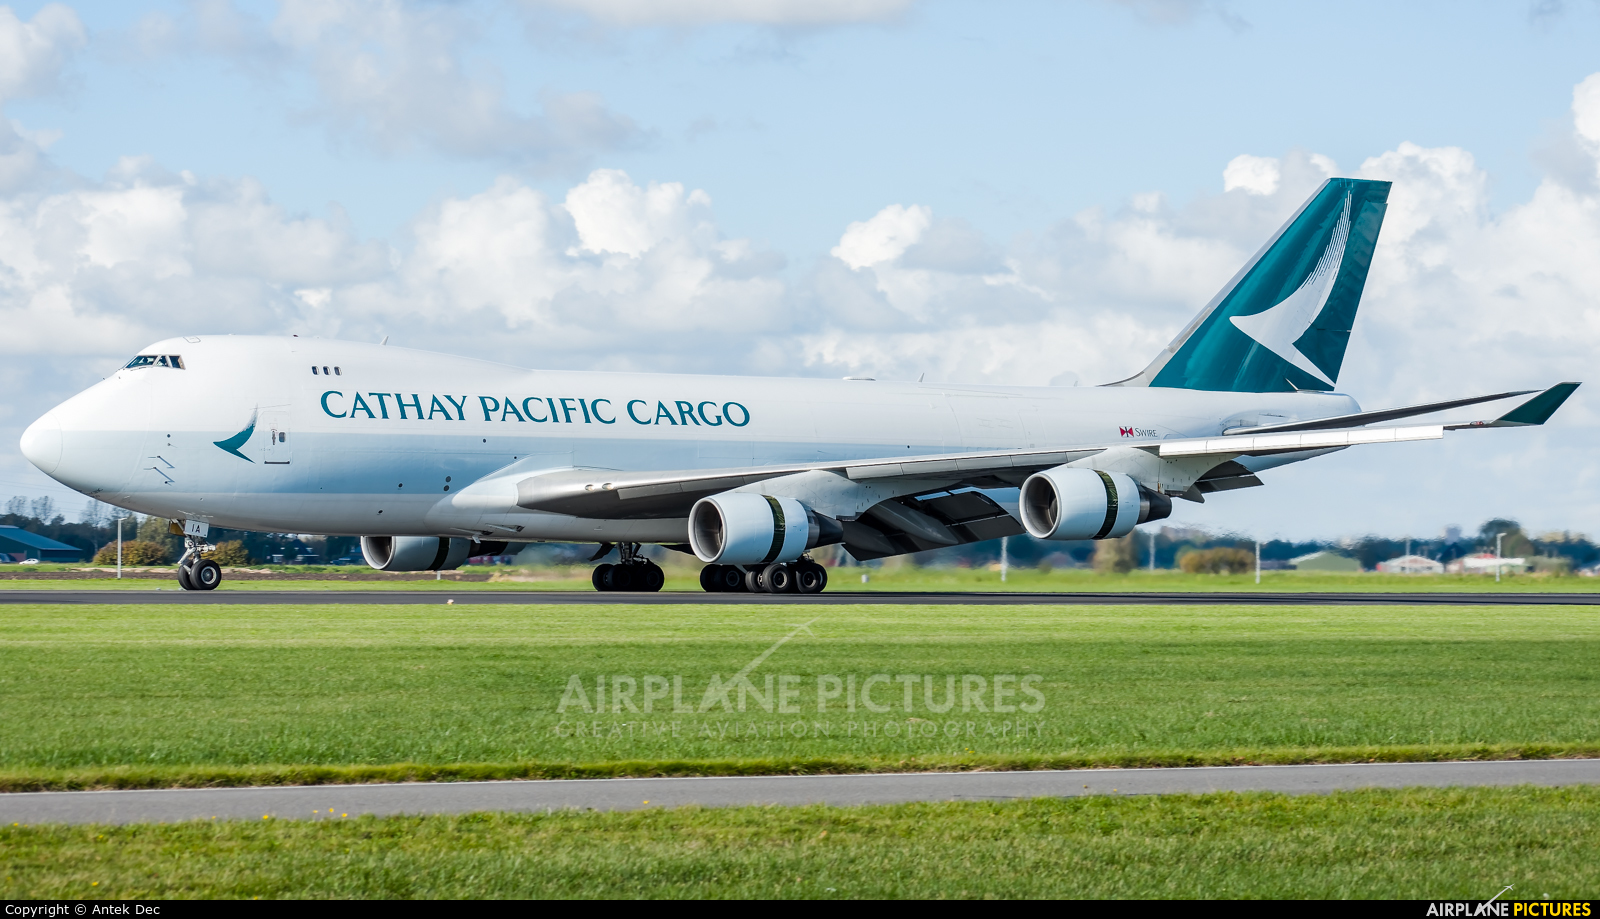 Cathay Pacific Cargo B-LIA aircraft at Amsterdam - Schiphol